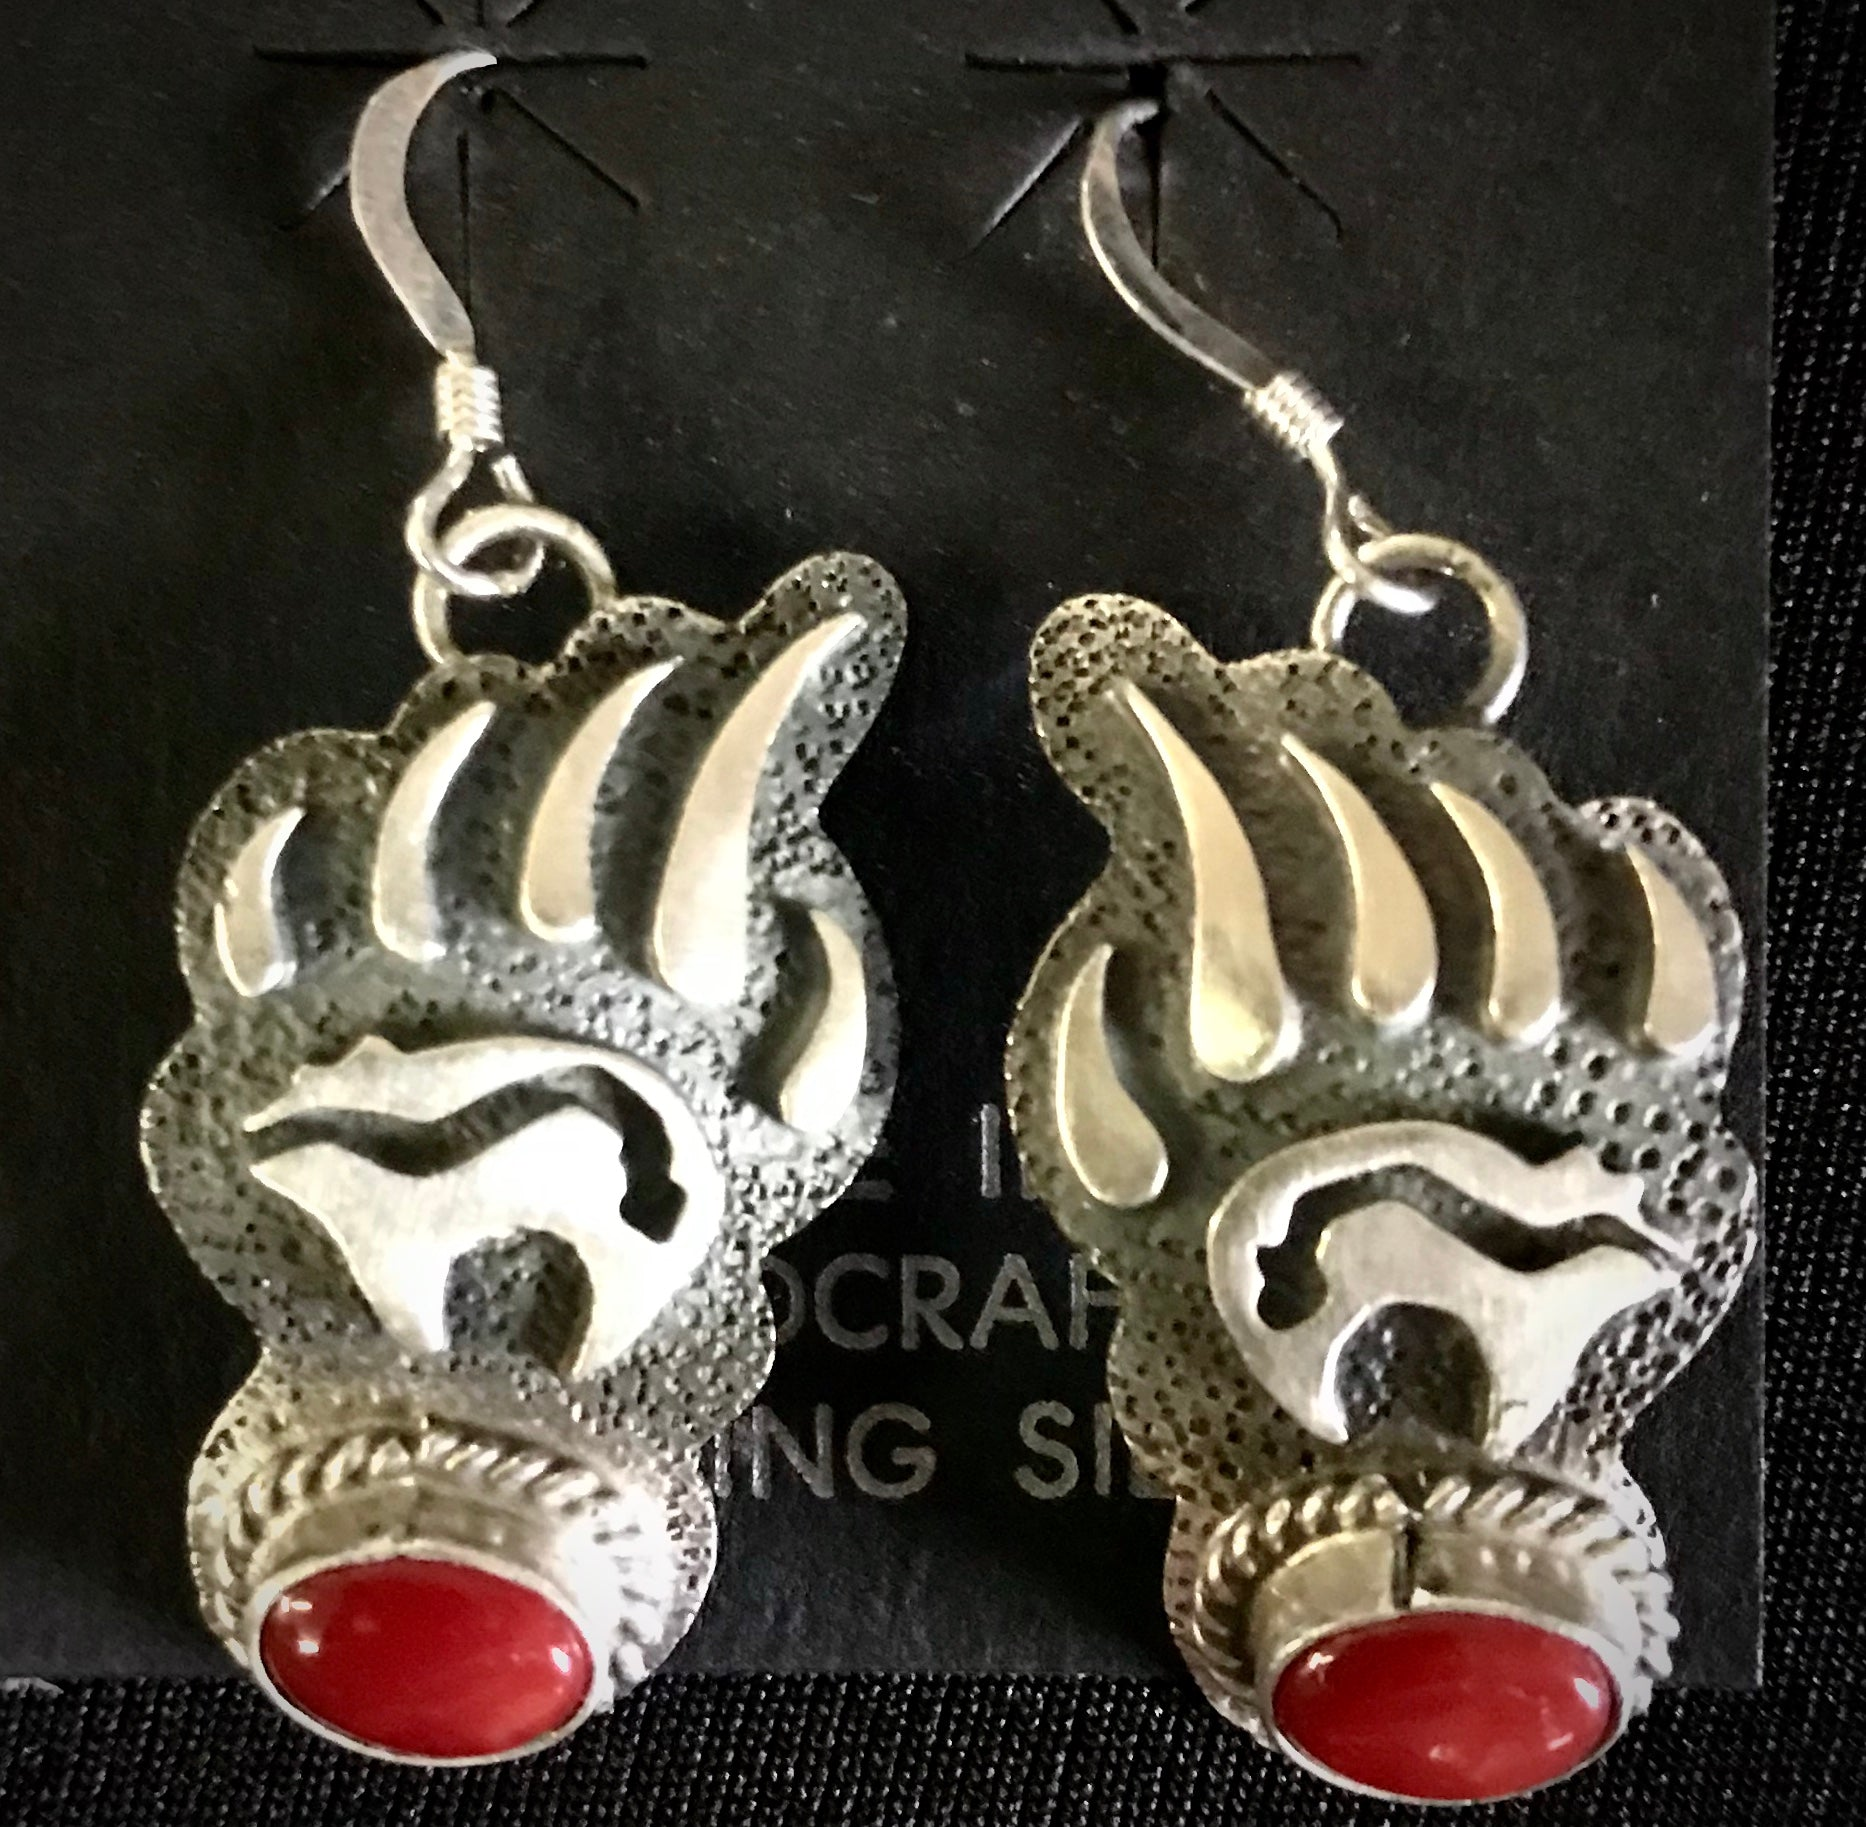 Bear paw coral earrings in sterling silver